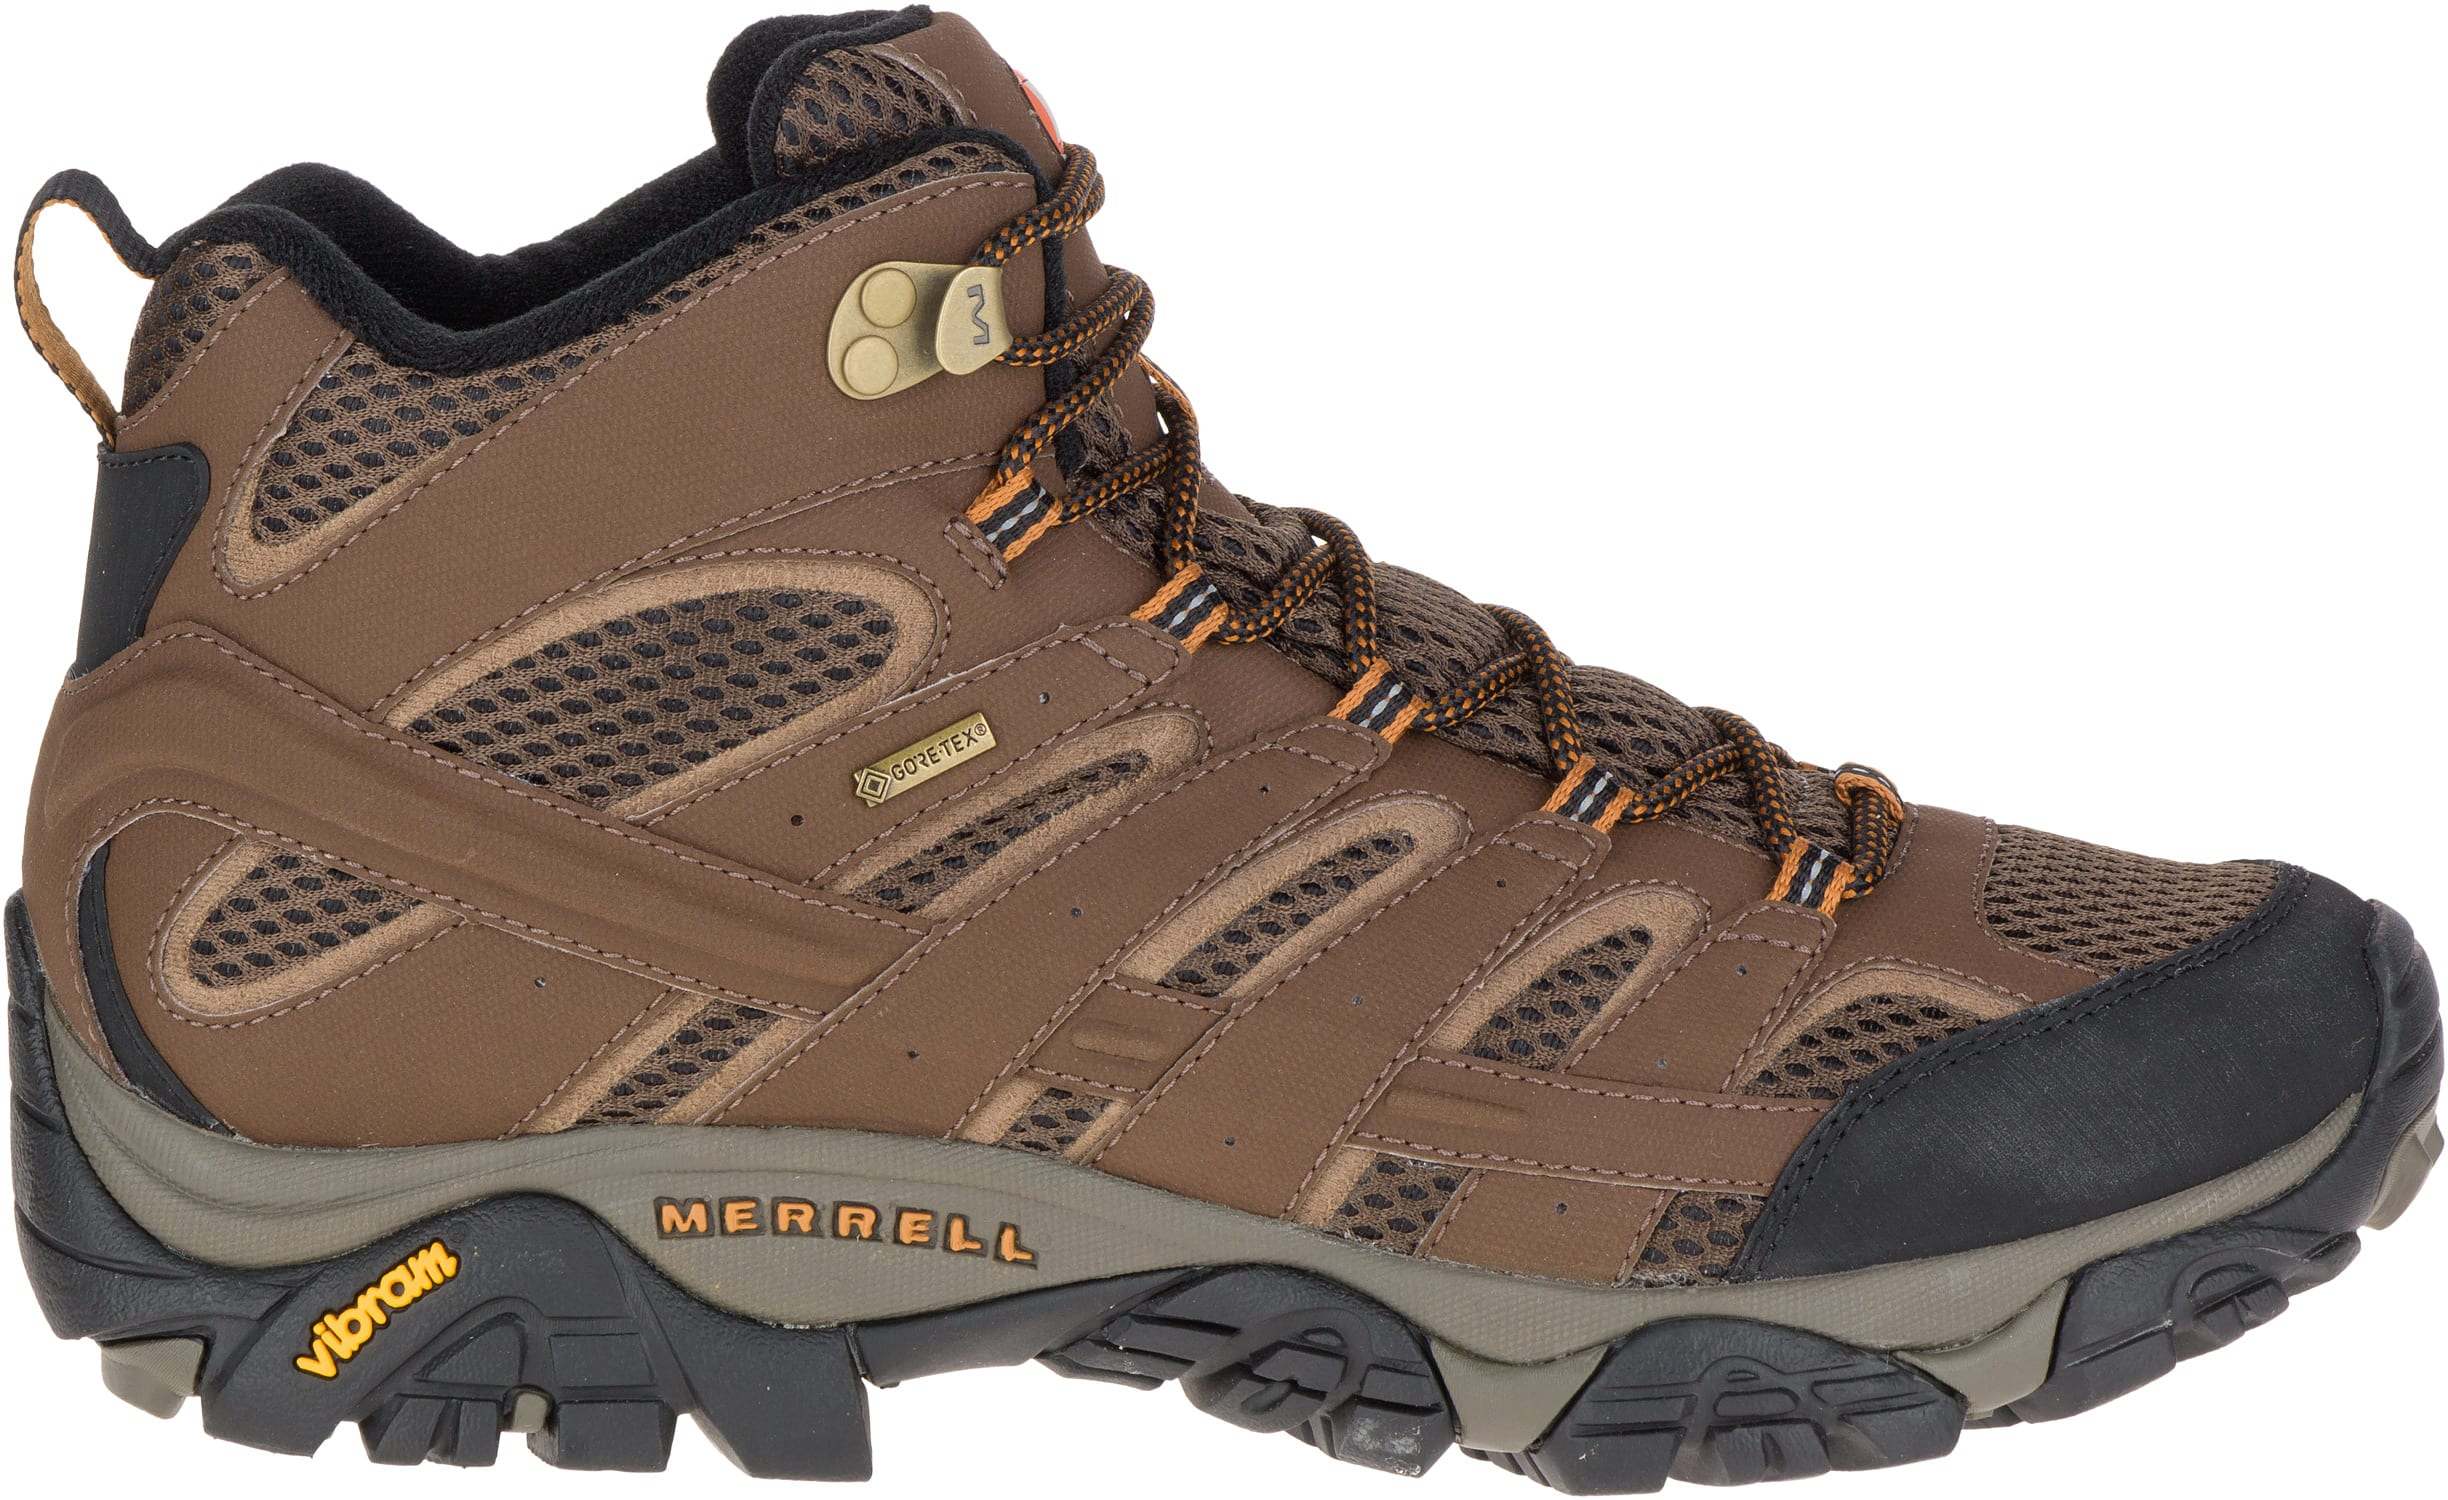 Womens Hiking Merrell Shoes